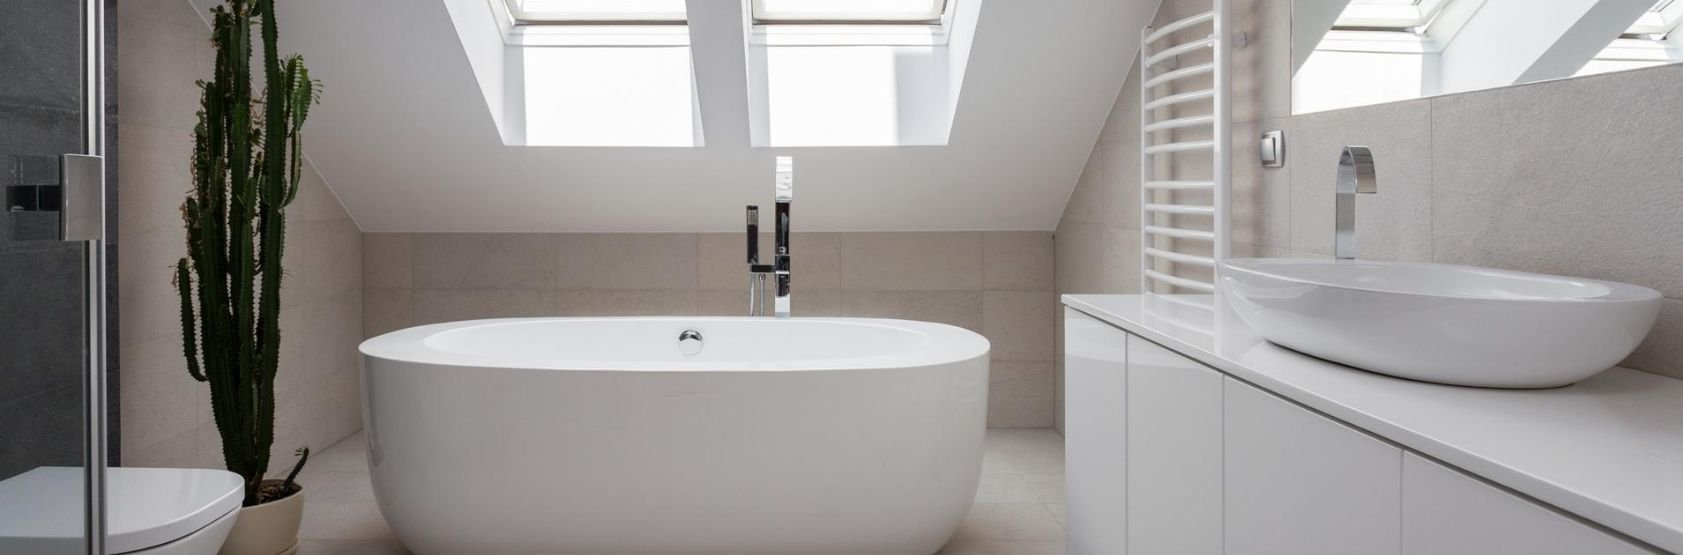 Bathroom-Fitting-Services-Dorset-Hampshire_3